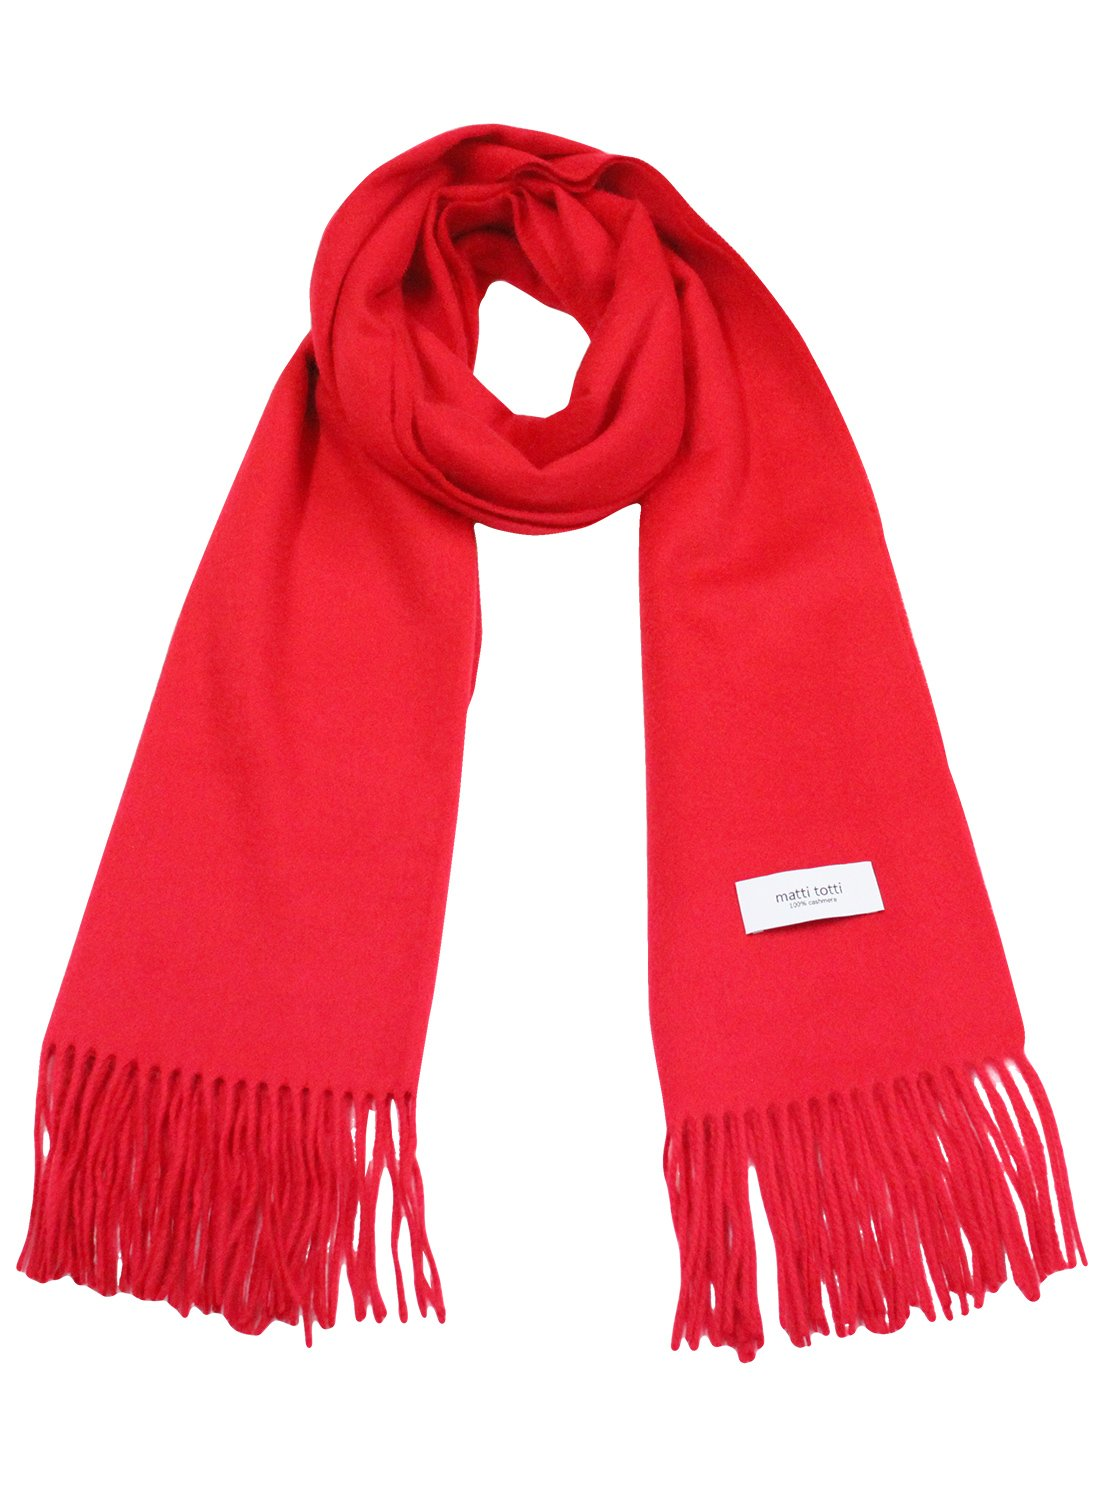 Red 100% Cashmere Shawl Stole Men's 2017 Gift Scarves Wrap Blanket A1024B2-10